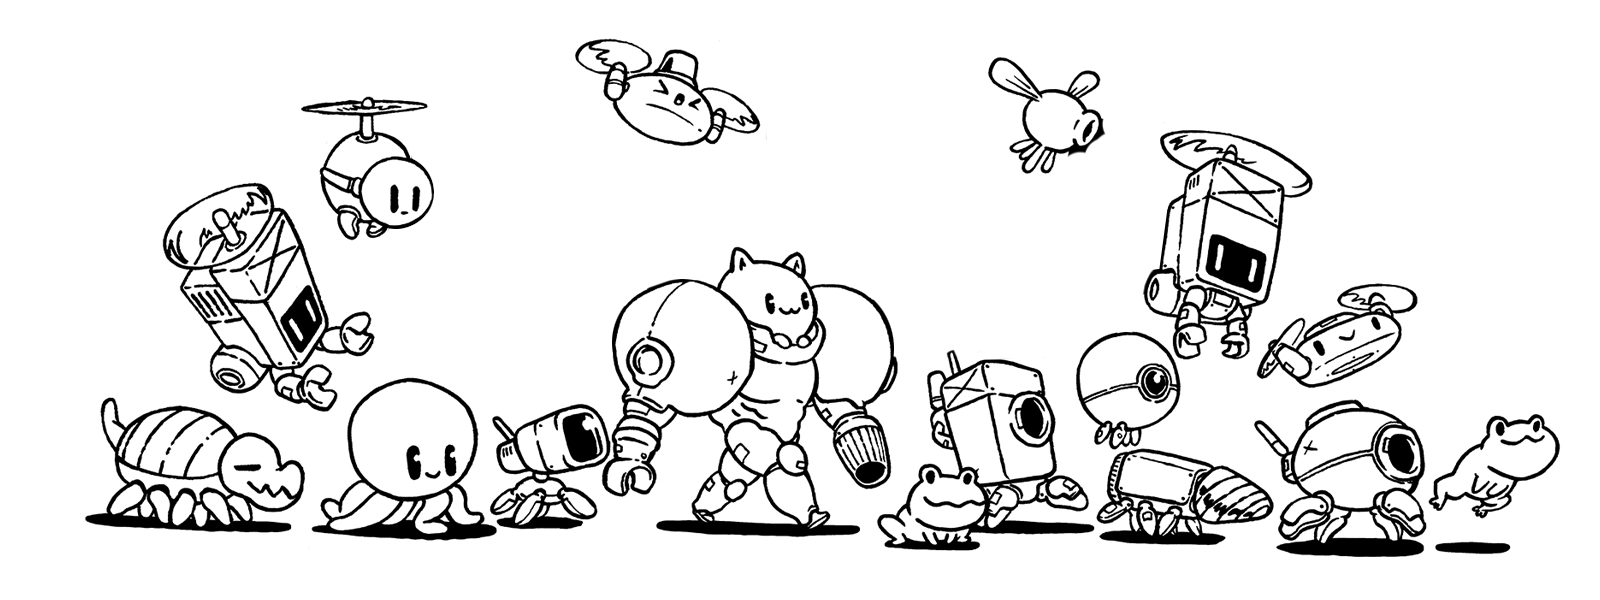 Can We Get More Games Like Gato Roboto, Please?